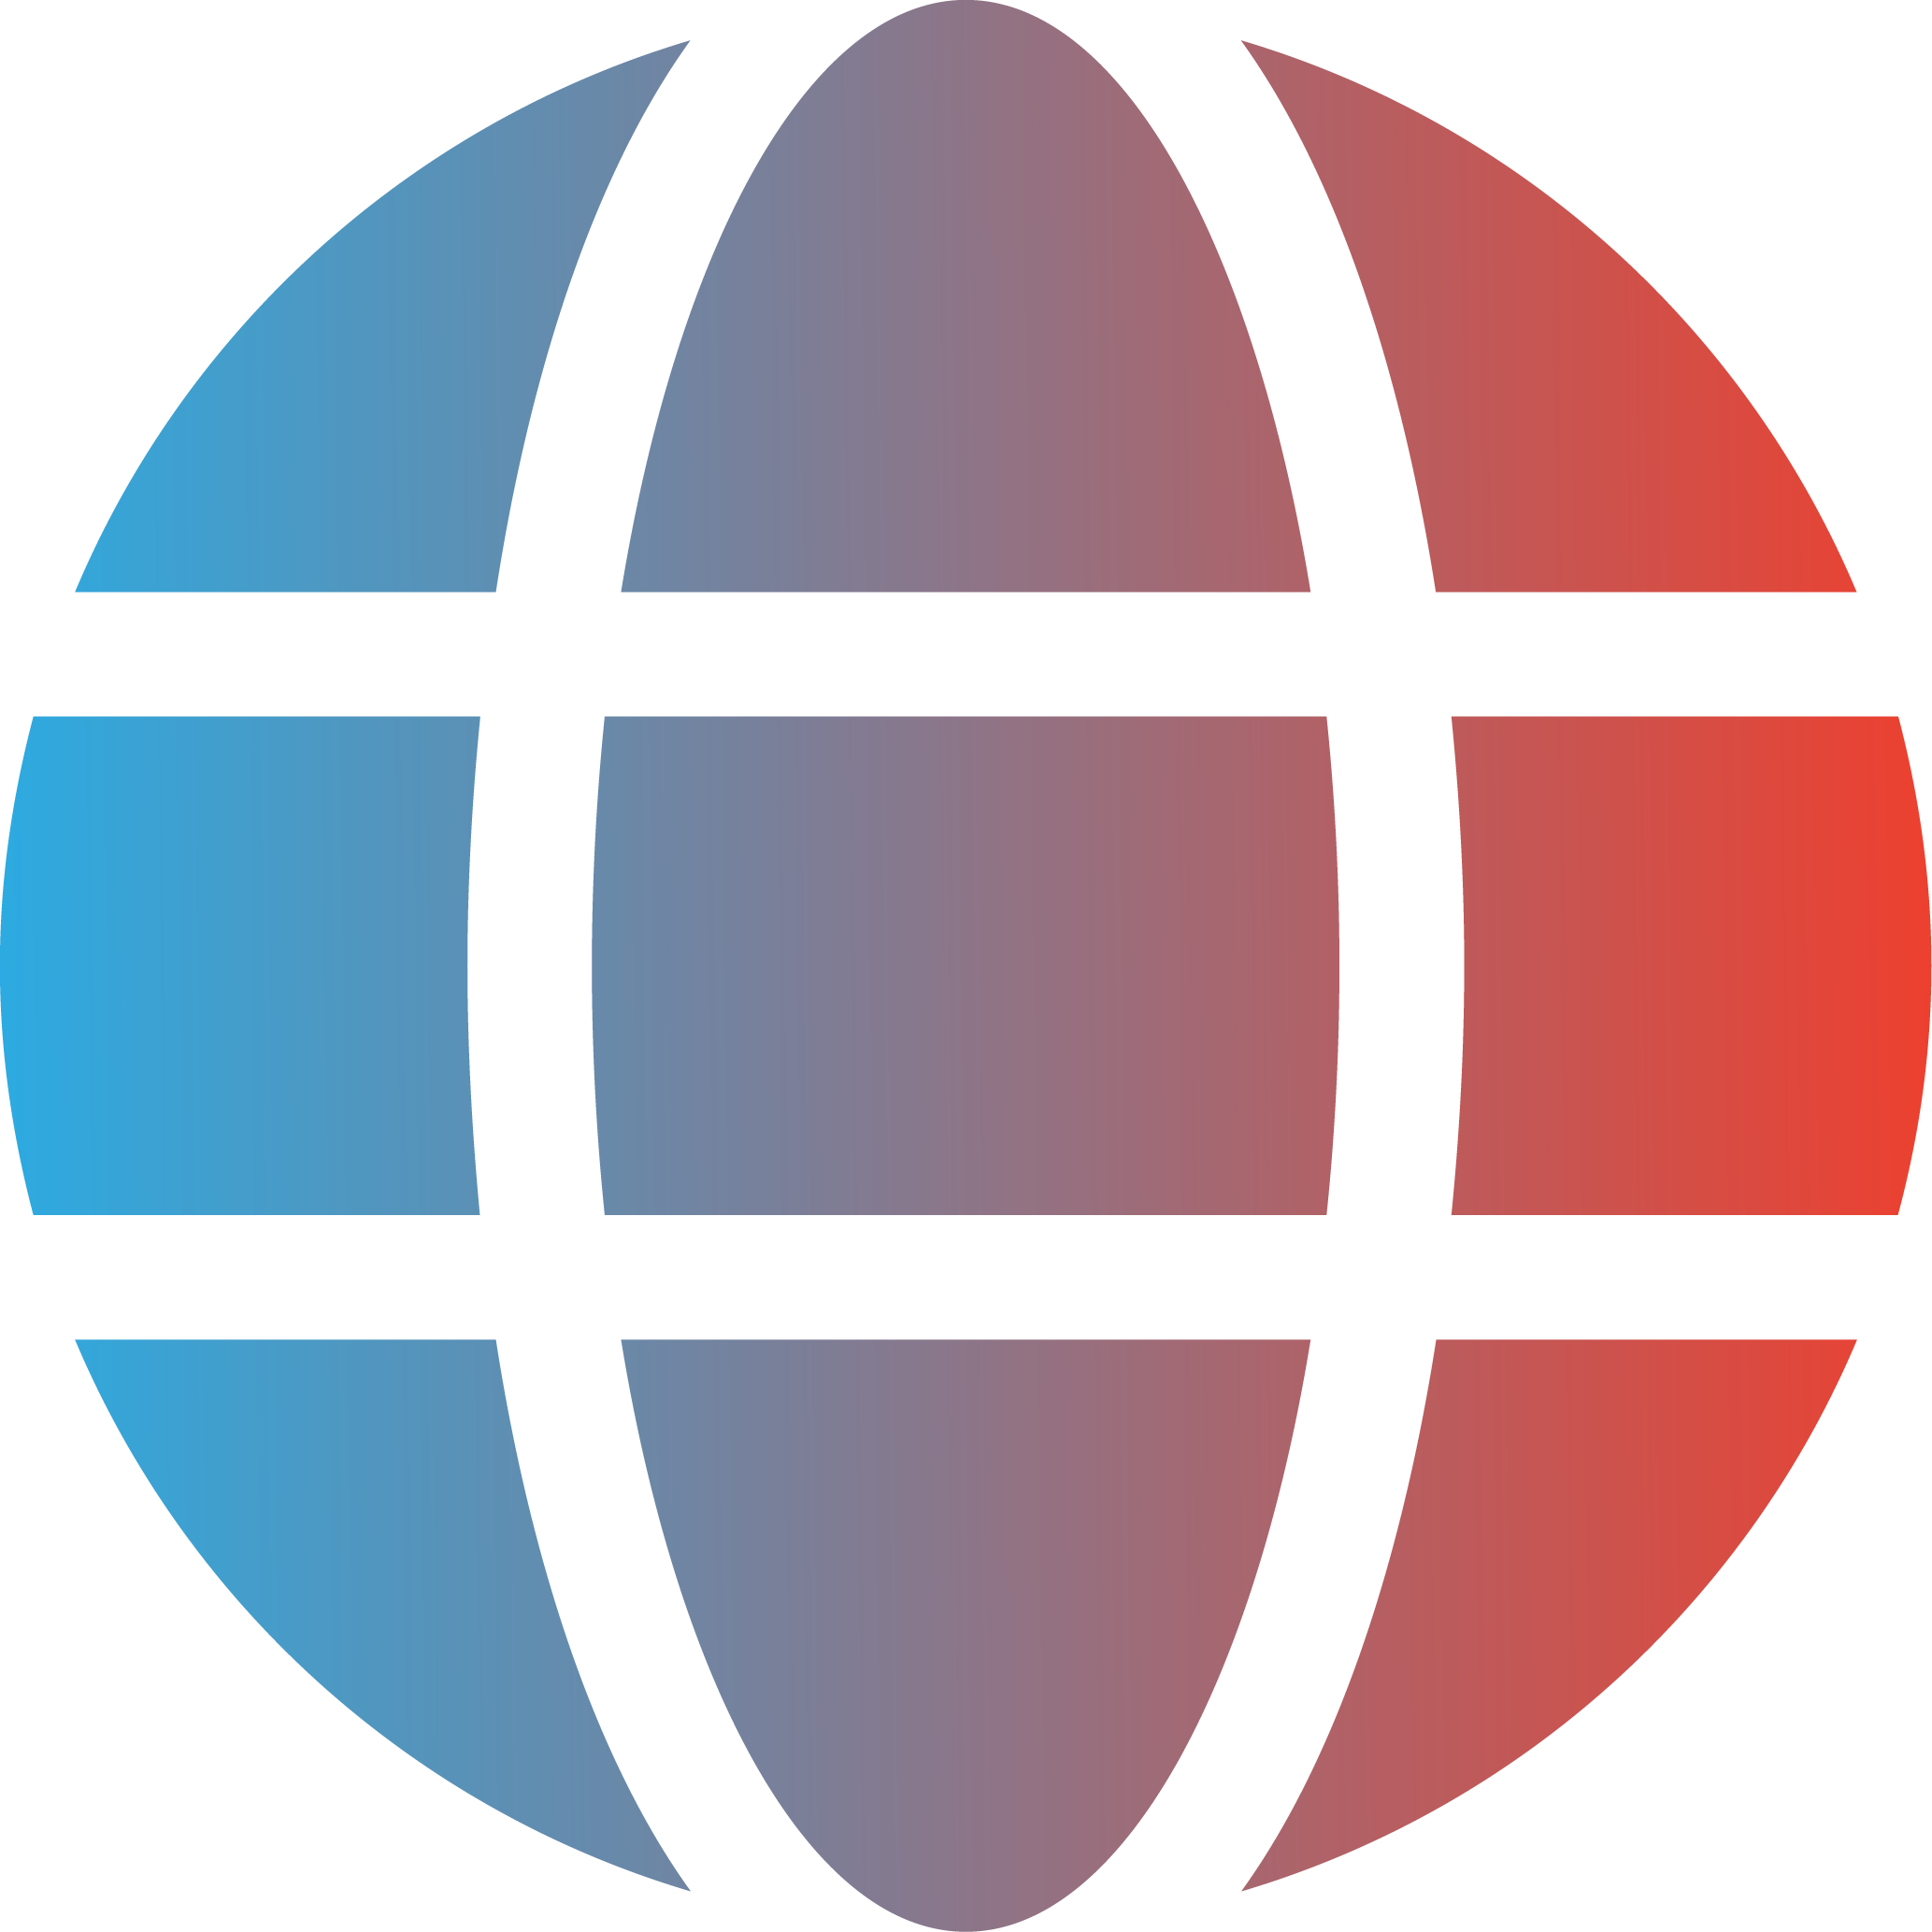 Globe icon in a blue and red gradient